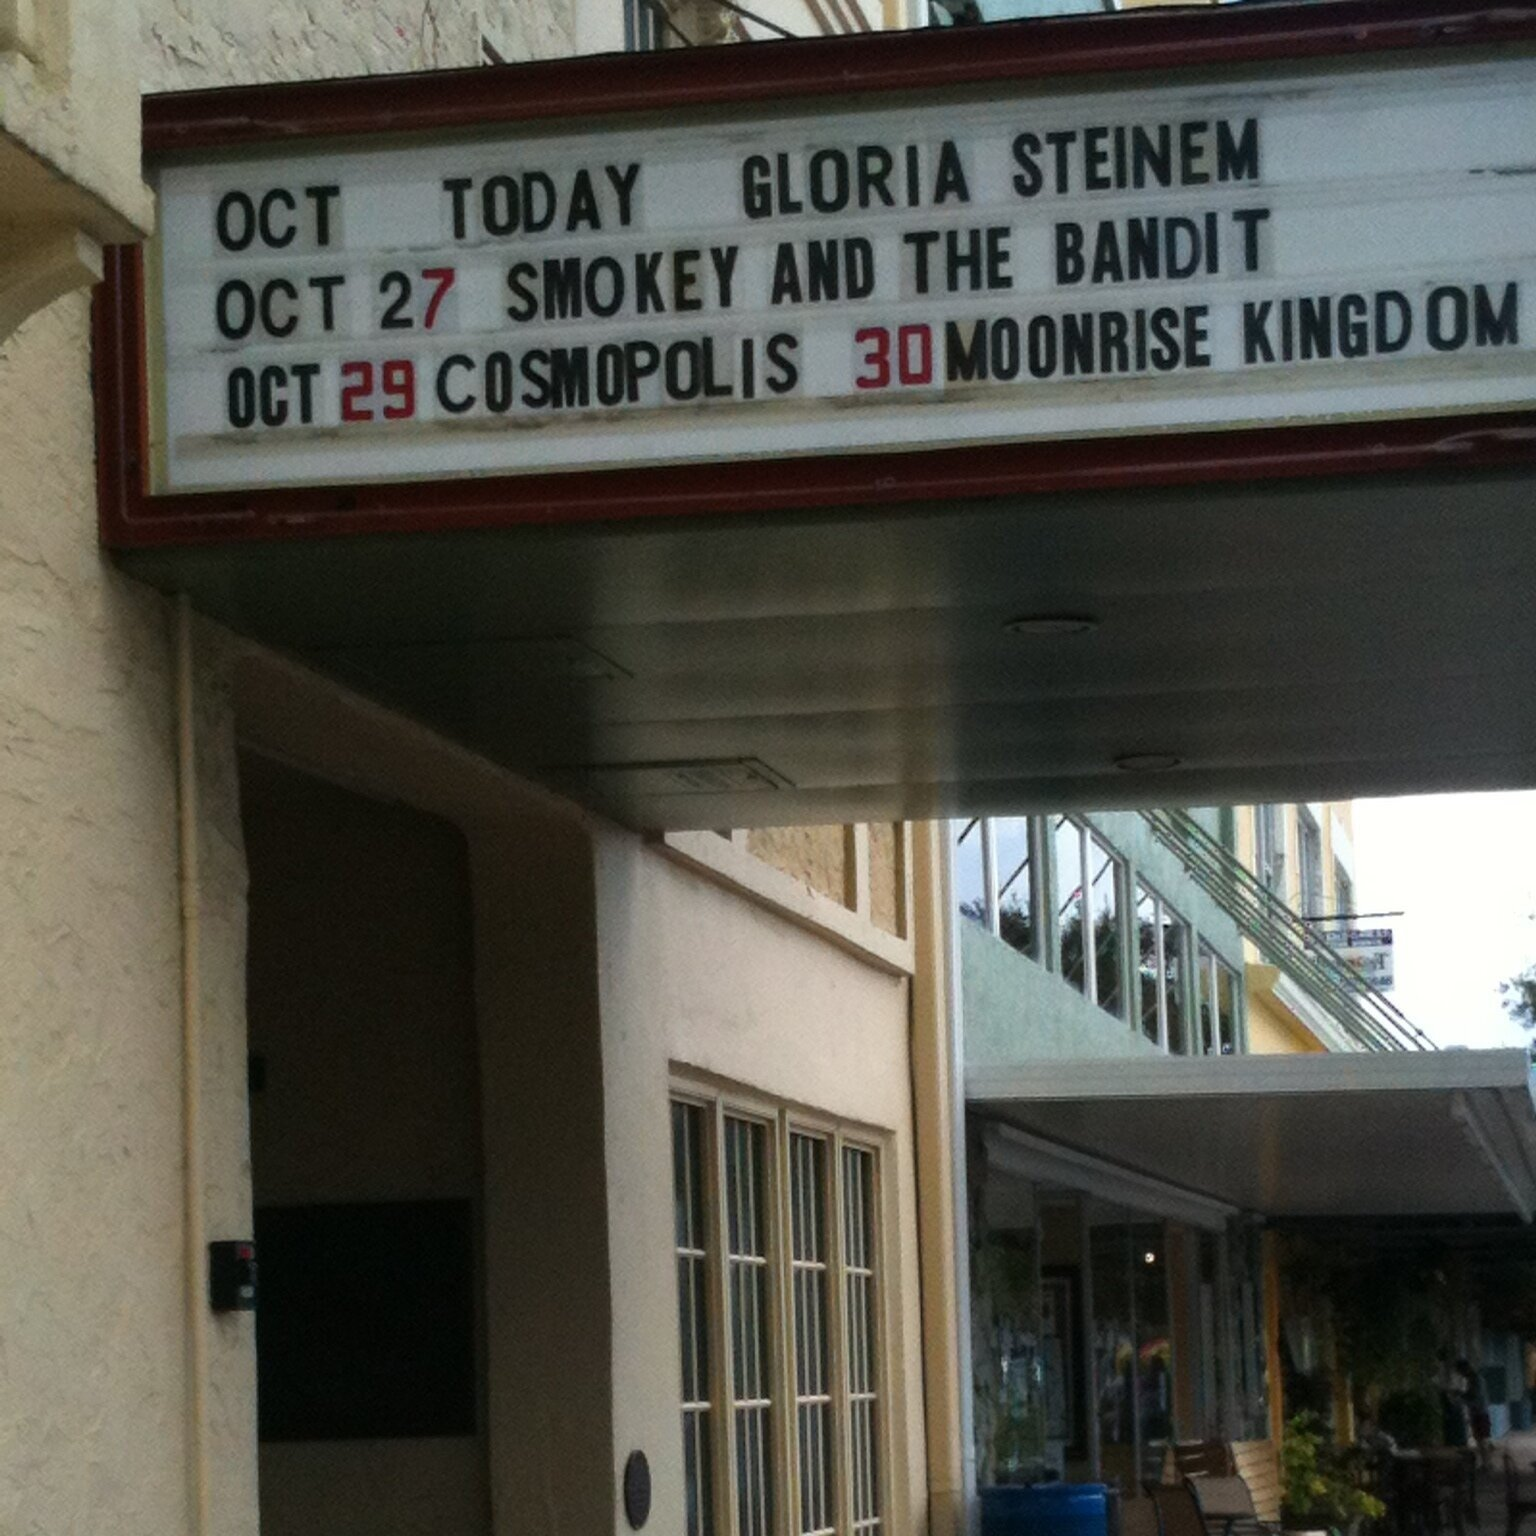 Gloria Steinem's name on theater awning